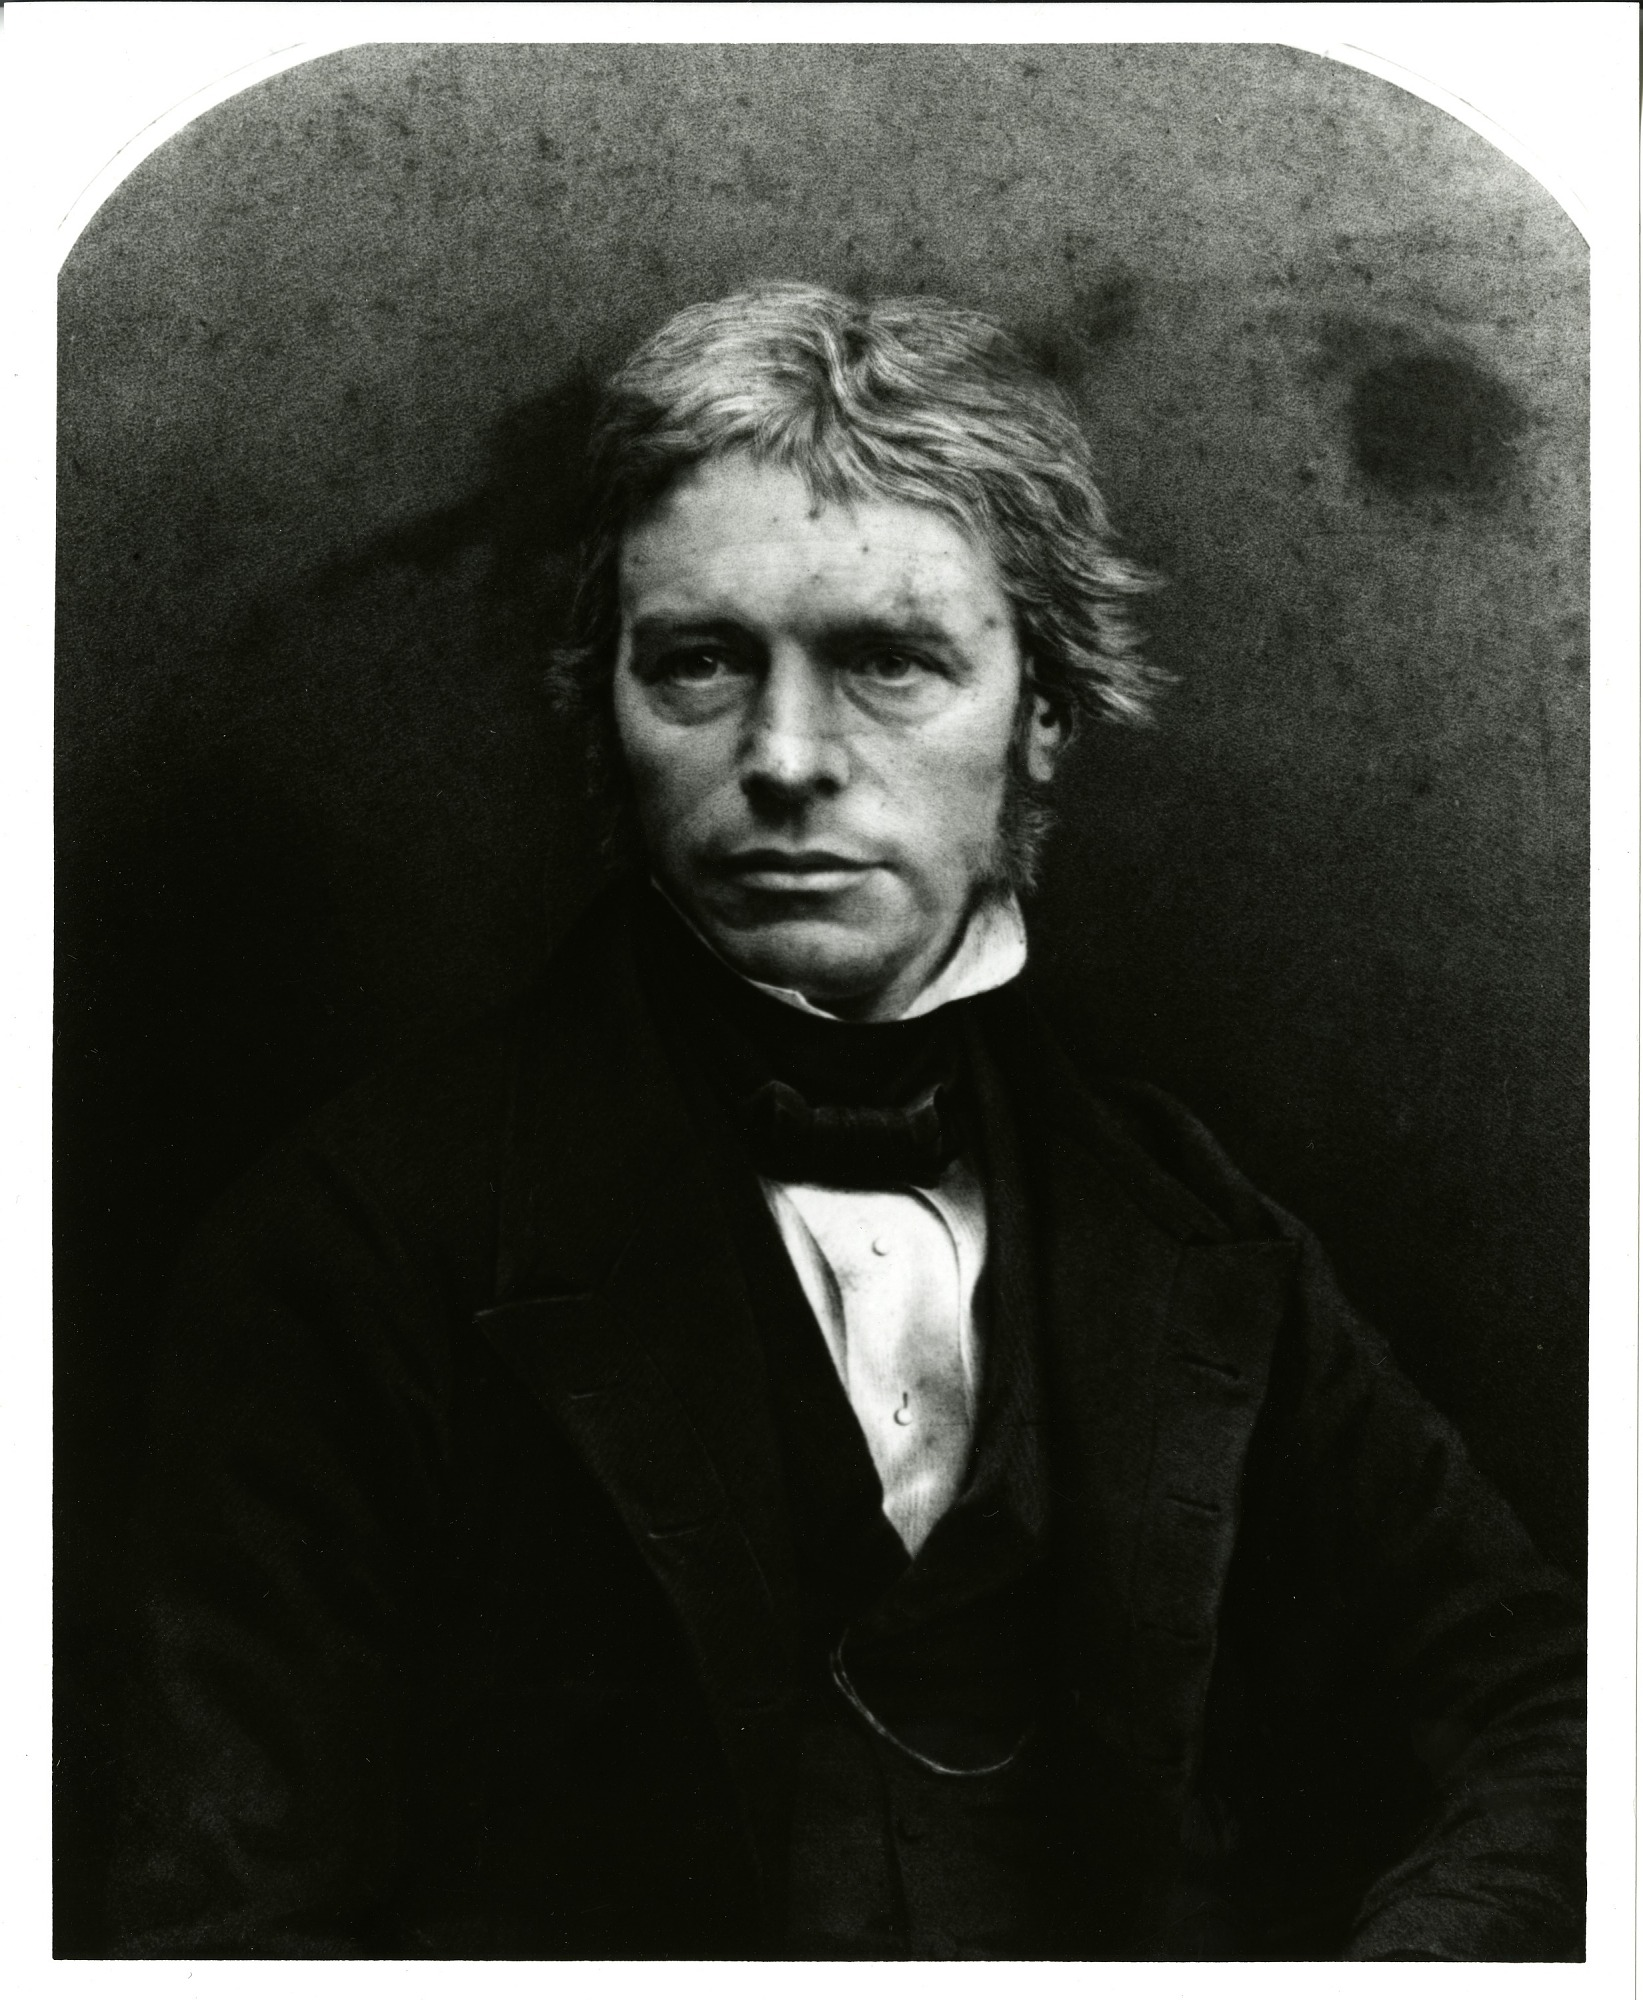 Michael Faraday, by Unknown, Smithsonian Archives - History Div, SIA2012-1087 and SA-523.